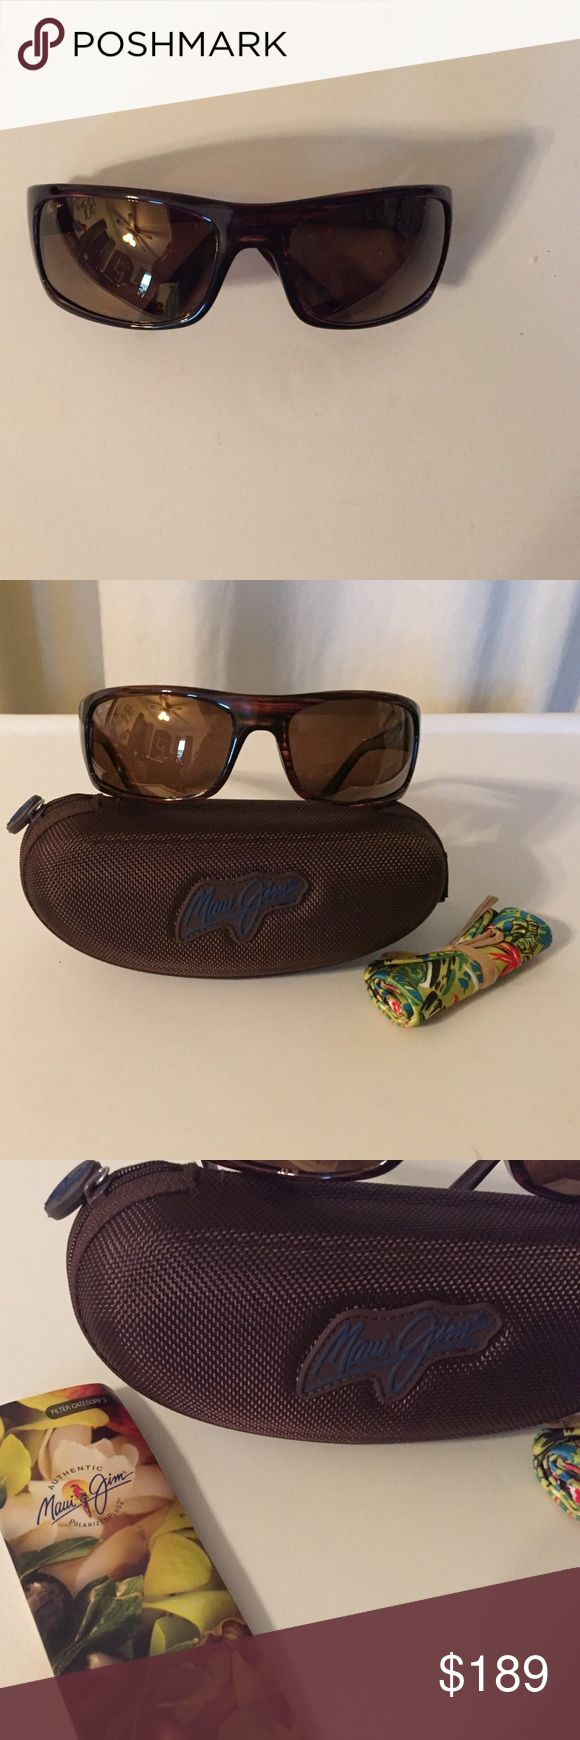 Brand new Maui Jim men's sunglasses Men's Maui Jim tortoise shell sunglasses, case included. Maui Jim Accessories Glasses